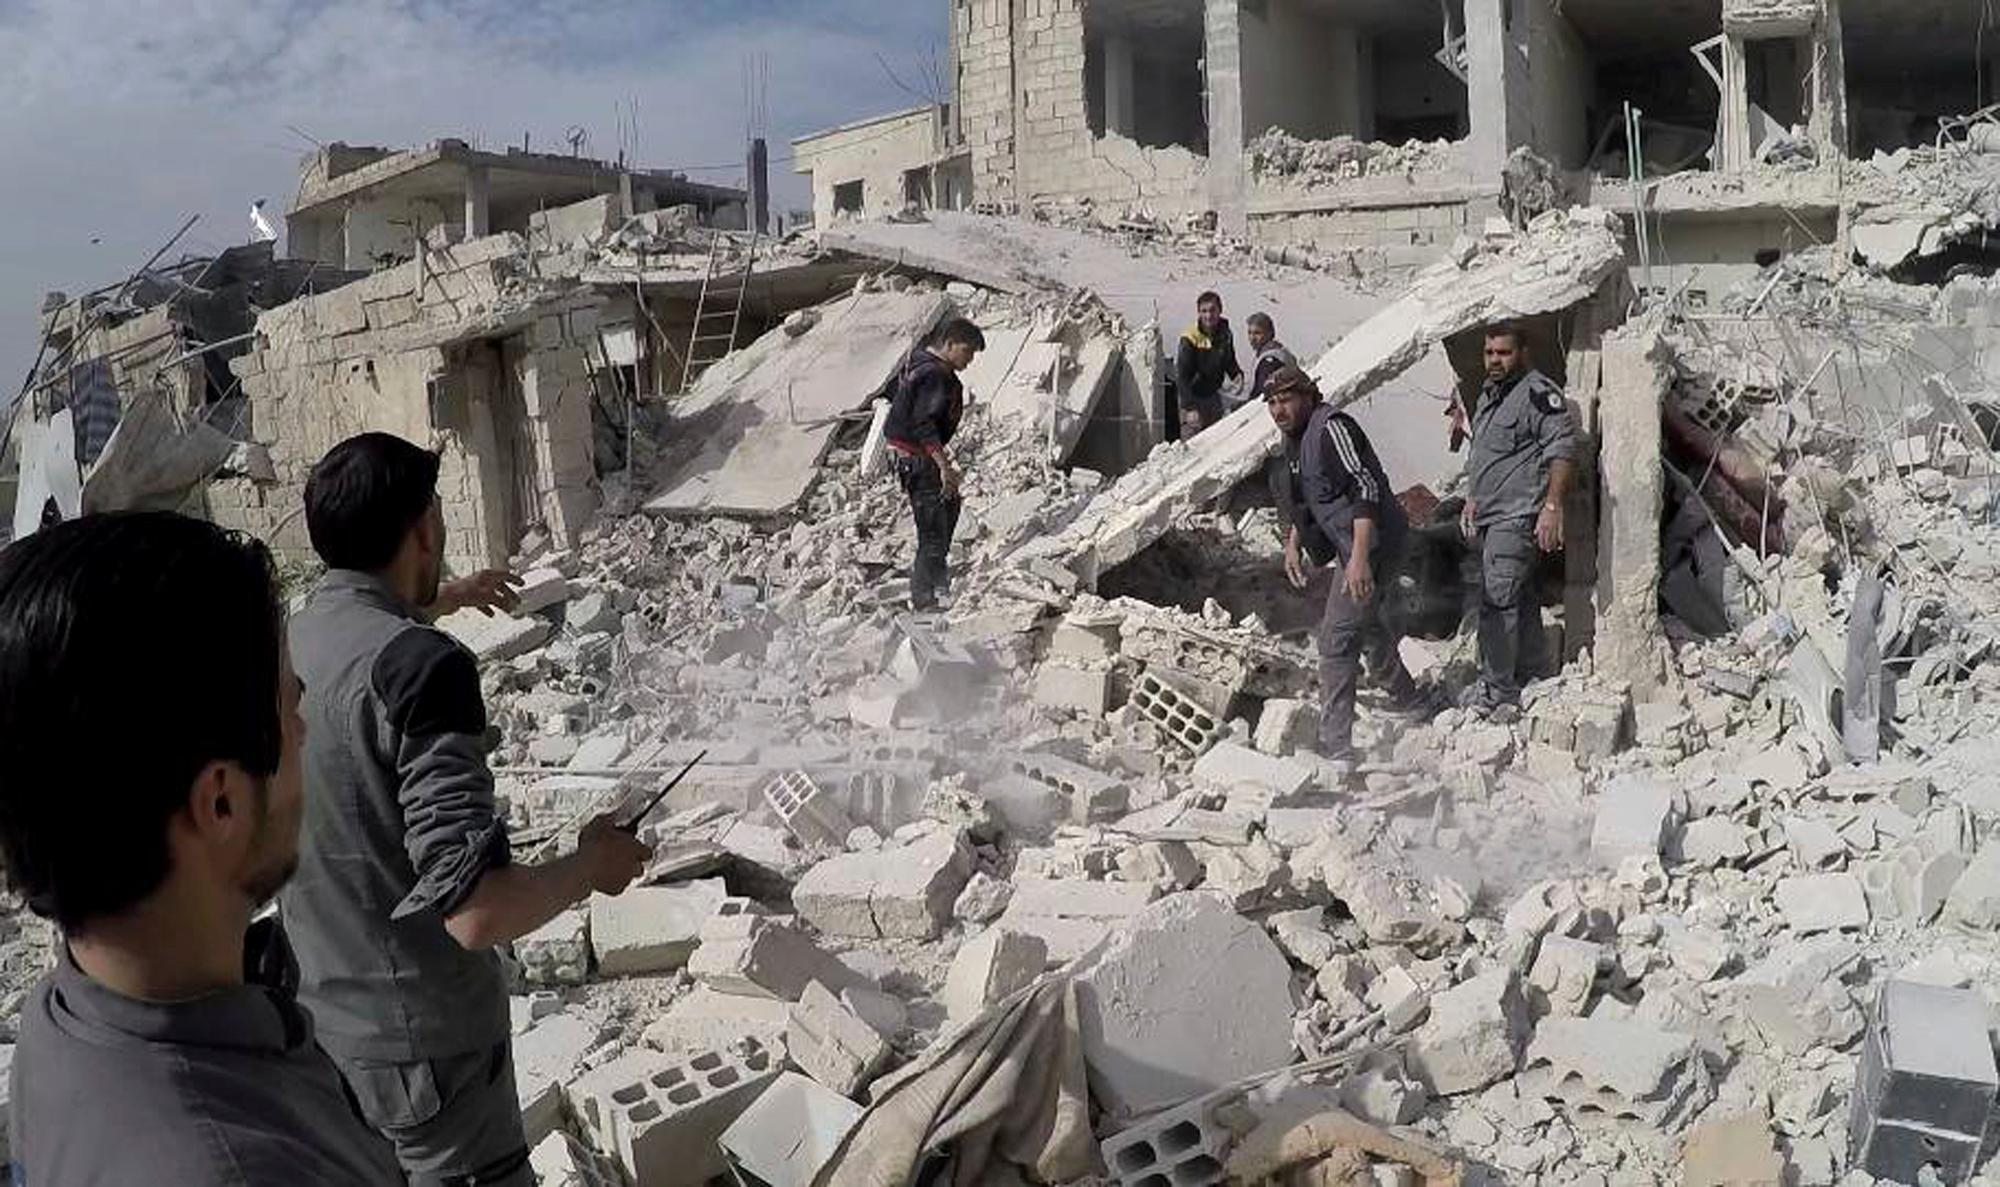 This photo provided by the Syrian Civil Defense White Helmets, which has been authenticated based on its contents and other AP reporting, shows civil defense workers and civilians inspecting a damaged building after airstrikes hit a rebel-held suburb near Damascus, Syria, Thursday, Feb. 8, 2018. Syrian rescue workers and activists say the death toll from ongoing government strikes on the opposition-held region near the capital Damascus has risen to at least 35. (Syrian Civil Defense White Helmets via AP)